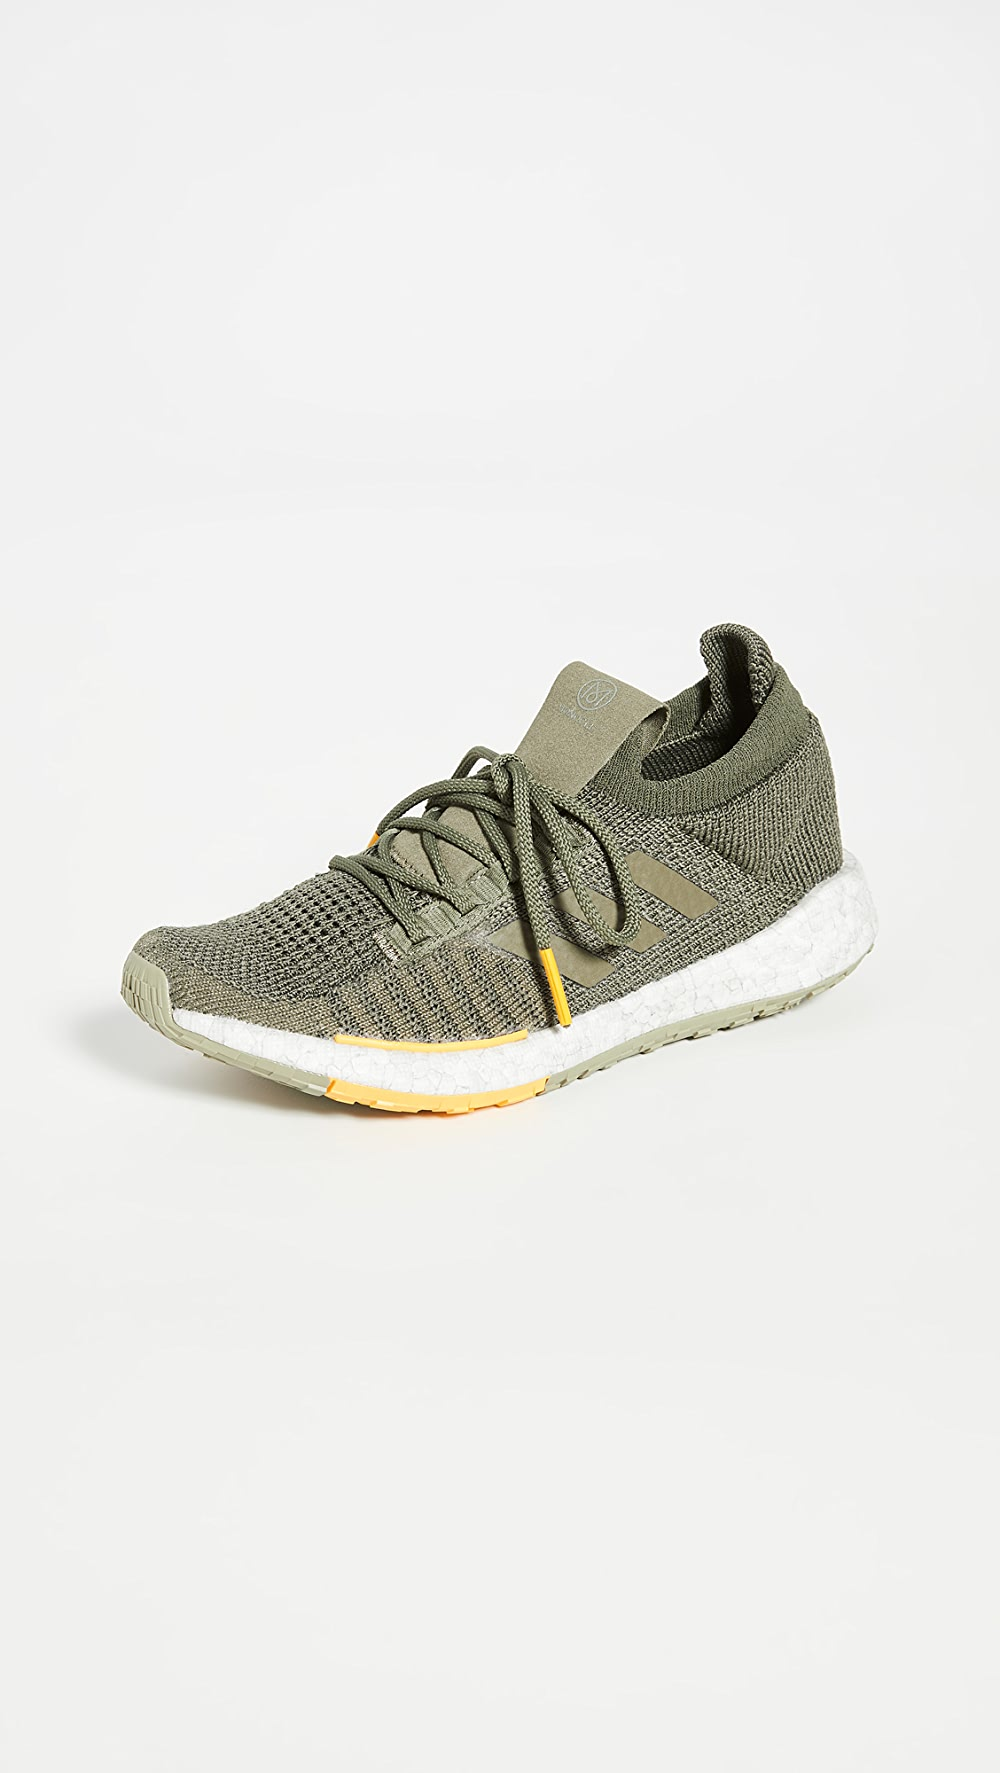 Able Adidas - Pulse Boost Hd Mc Sneakers Lustrous